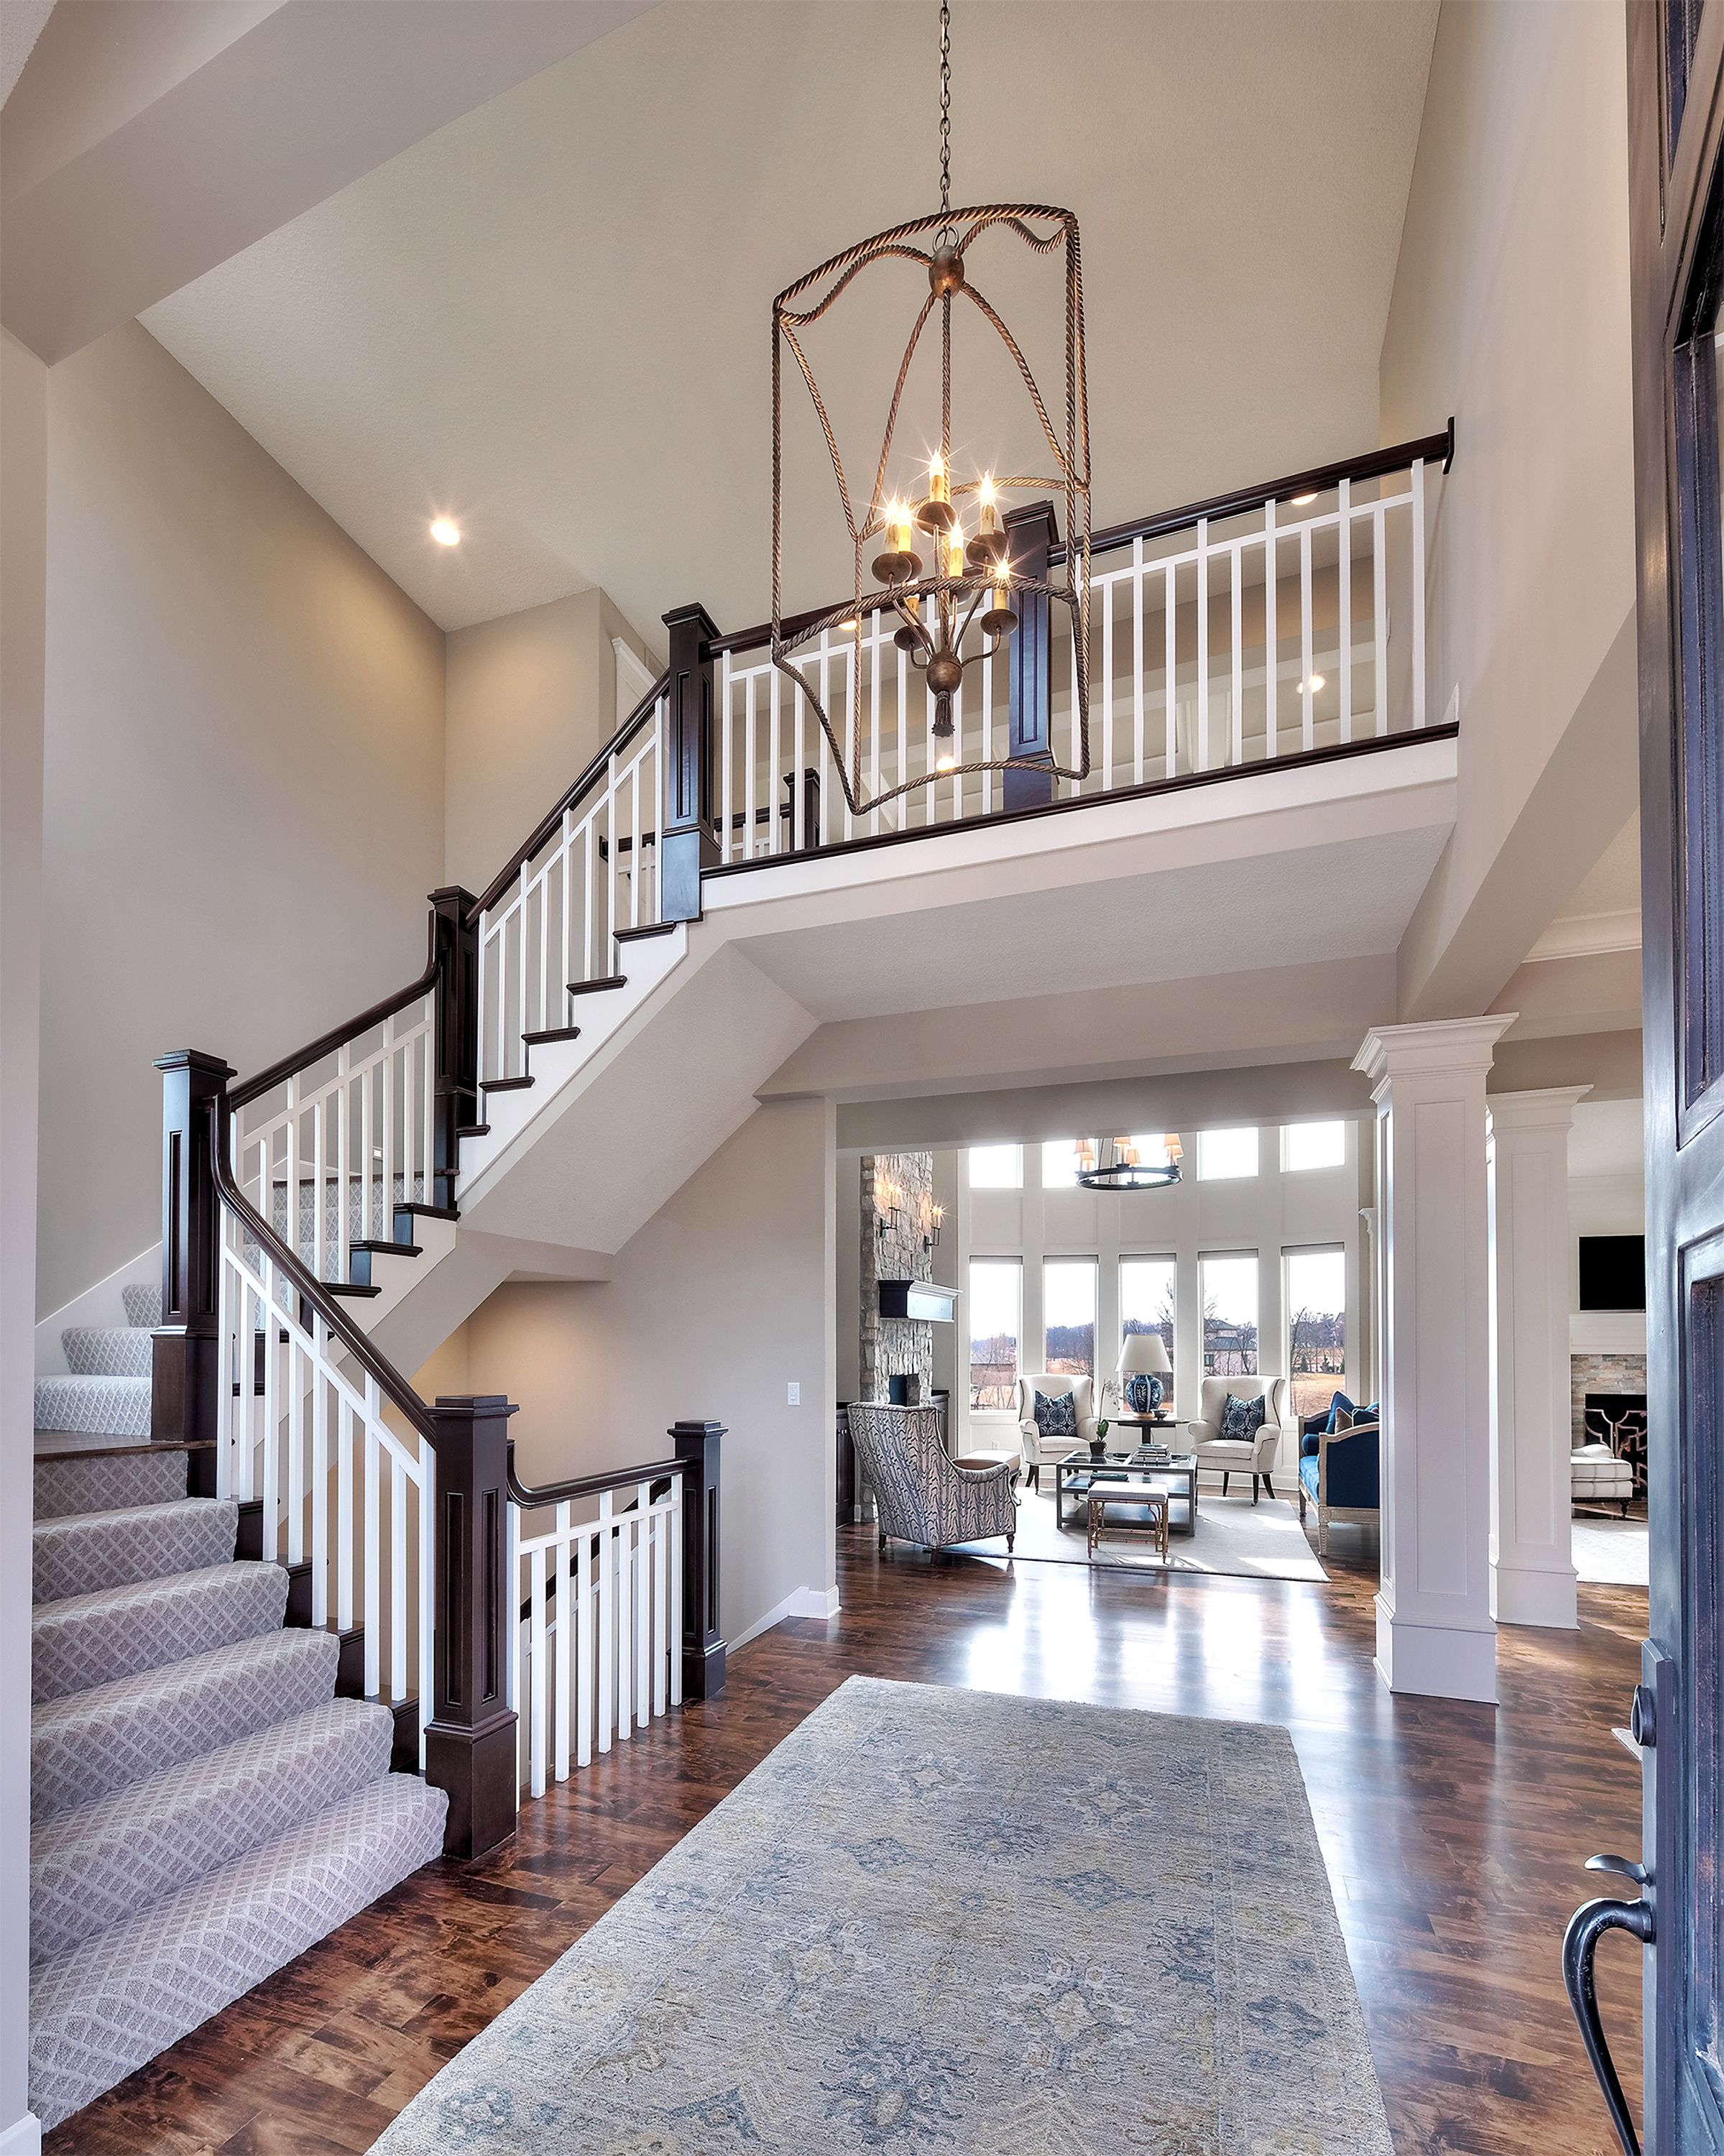 Foyer In Open Floor Plan : Entry curved staircase open floor plan overlook from